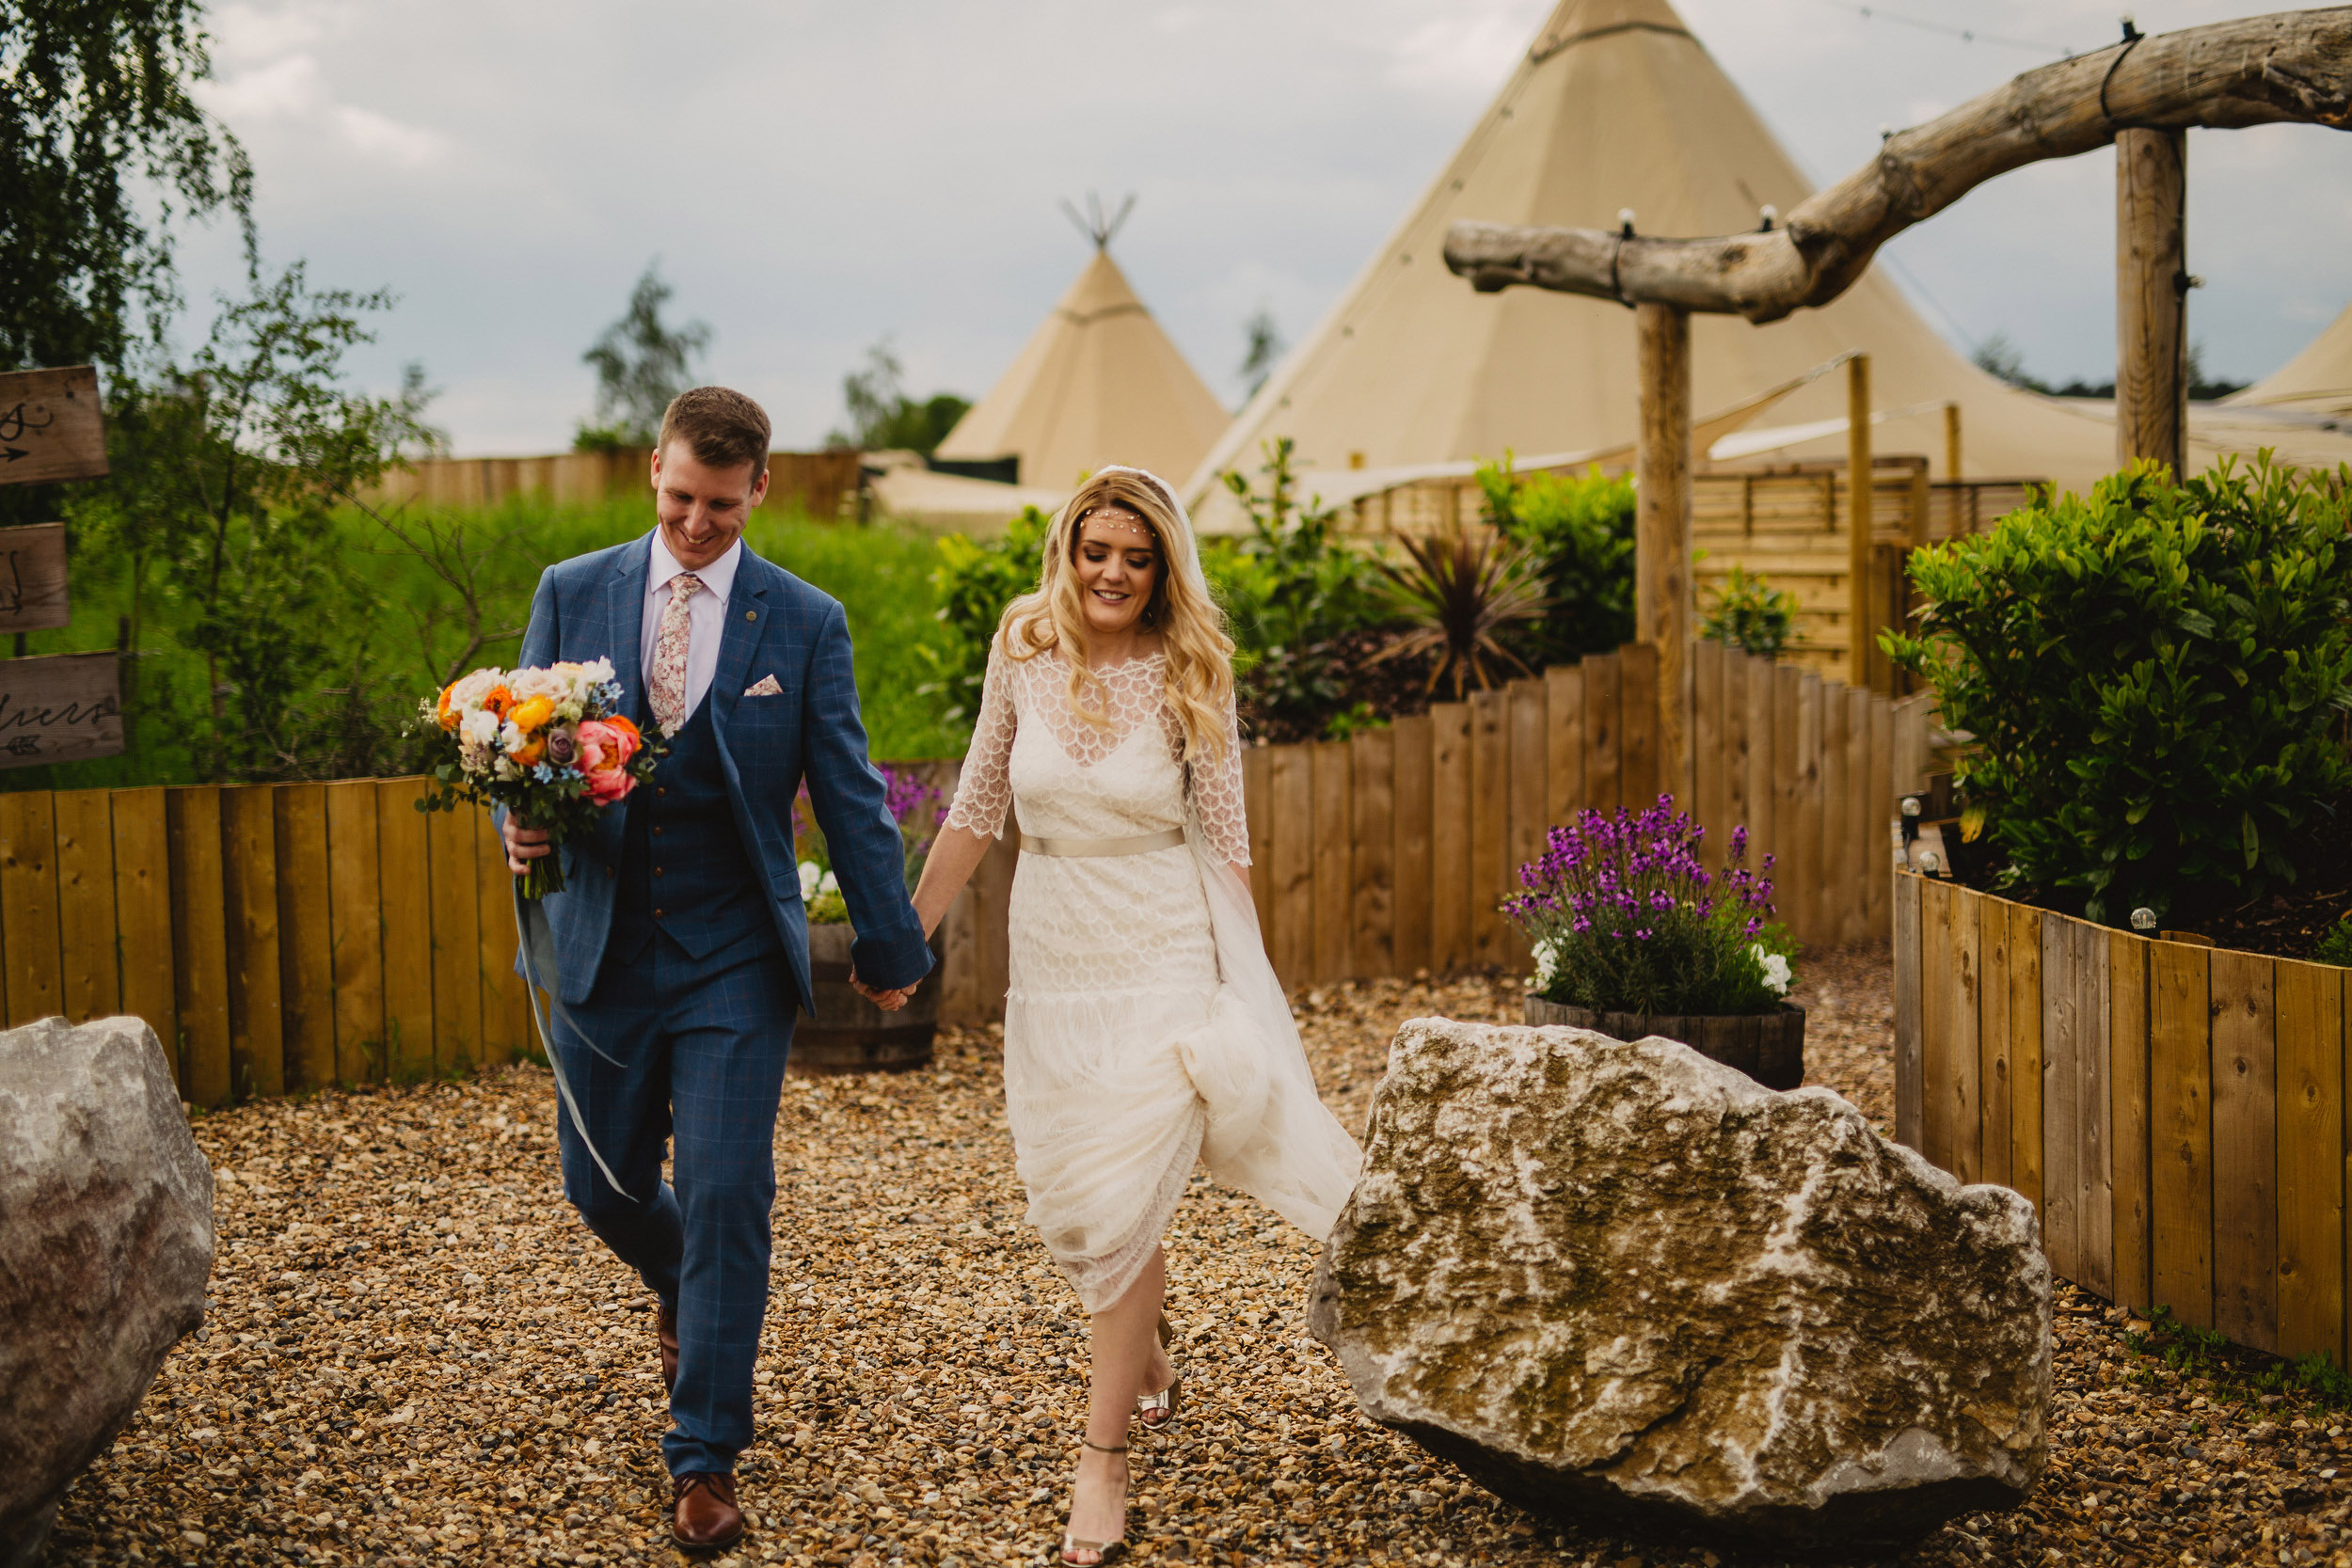 Gemma-Bohemian-Outdoor-Tipi-Wedding-Laid-Back-Relaxed-Family-Wedding-Kate-Beaumont-Astilbe-by-S6-Photography-Sheffield-27.jpg